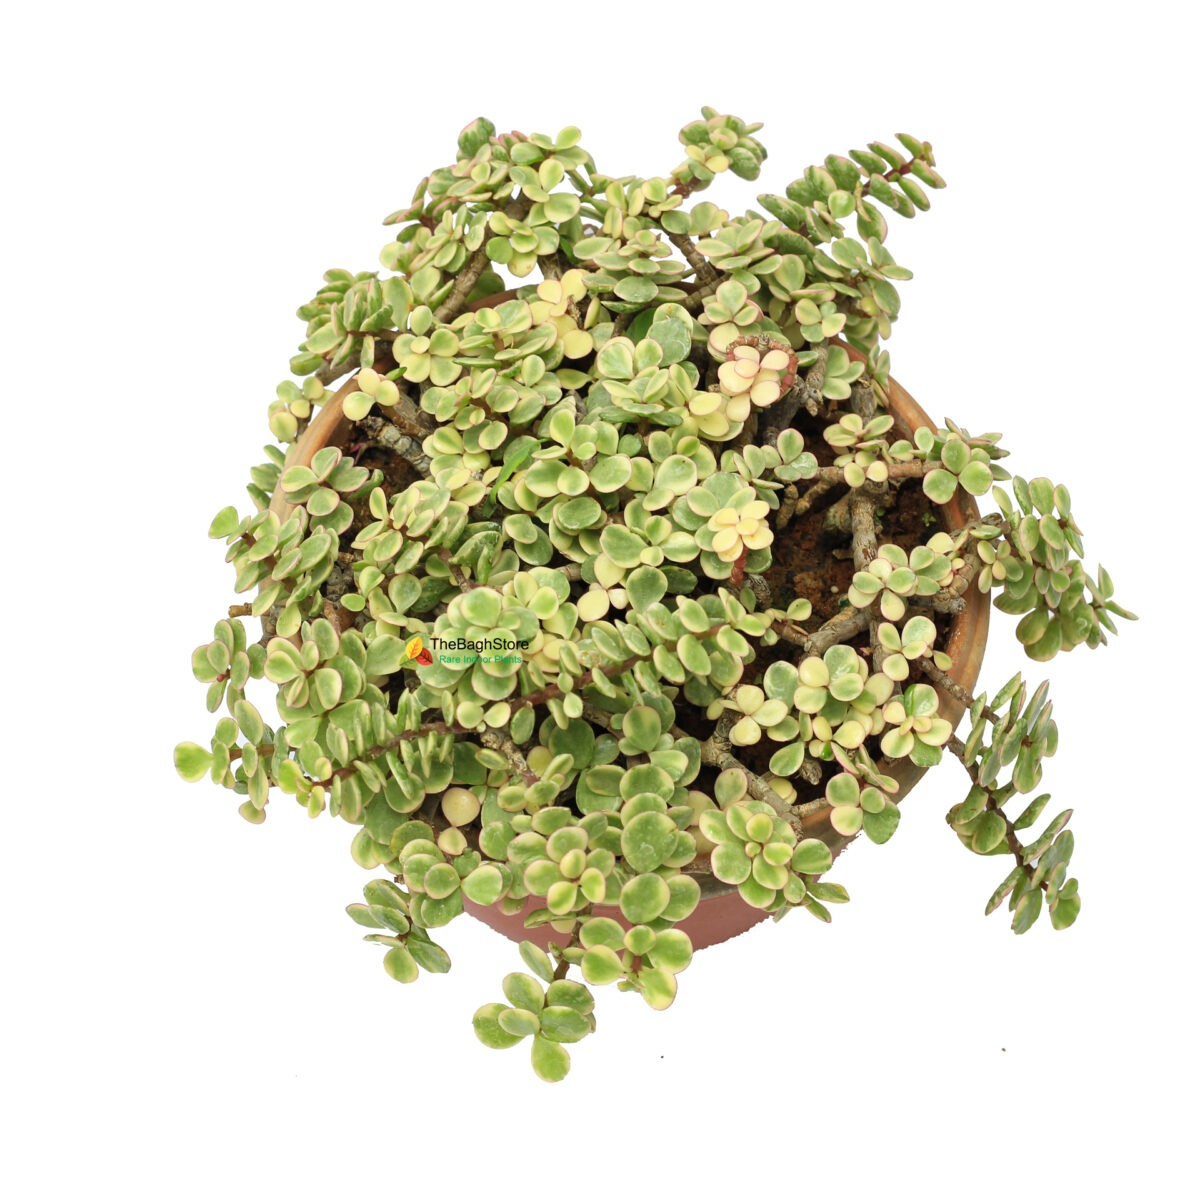 Hanging Variegated Jade plant indoor bangalore delivery